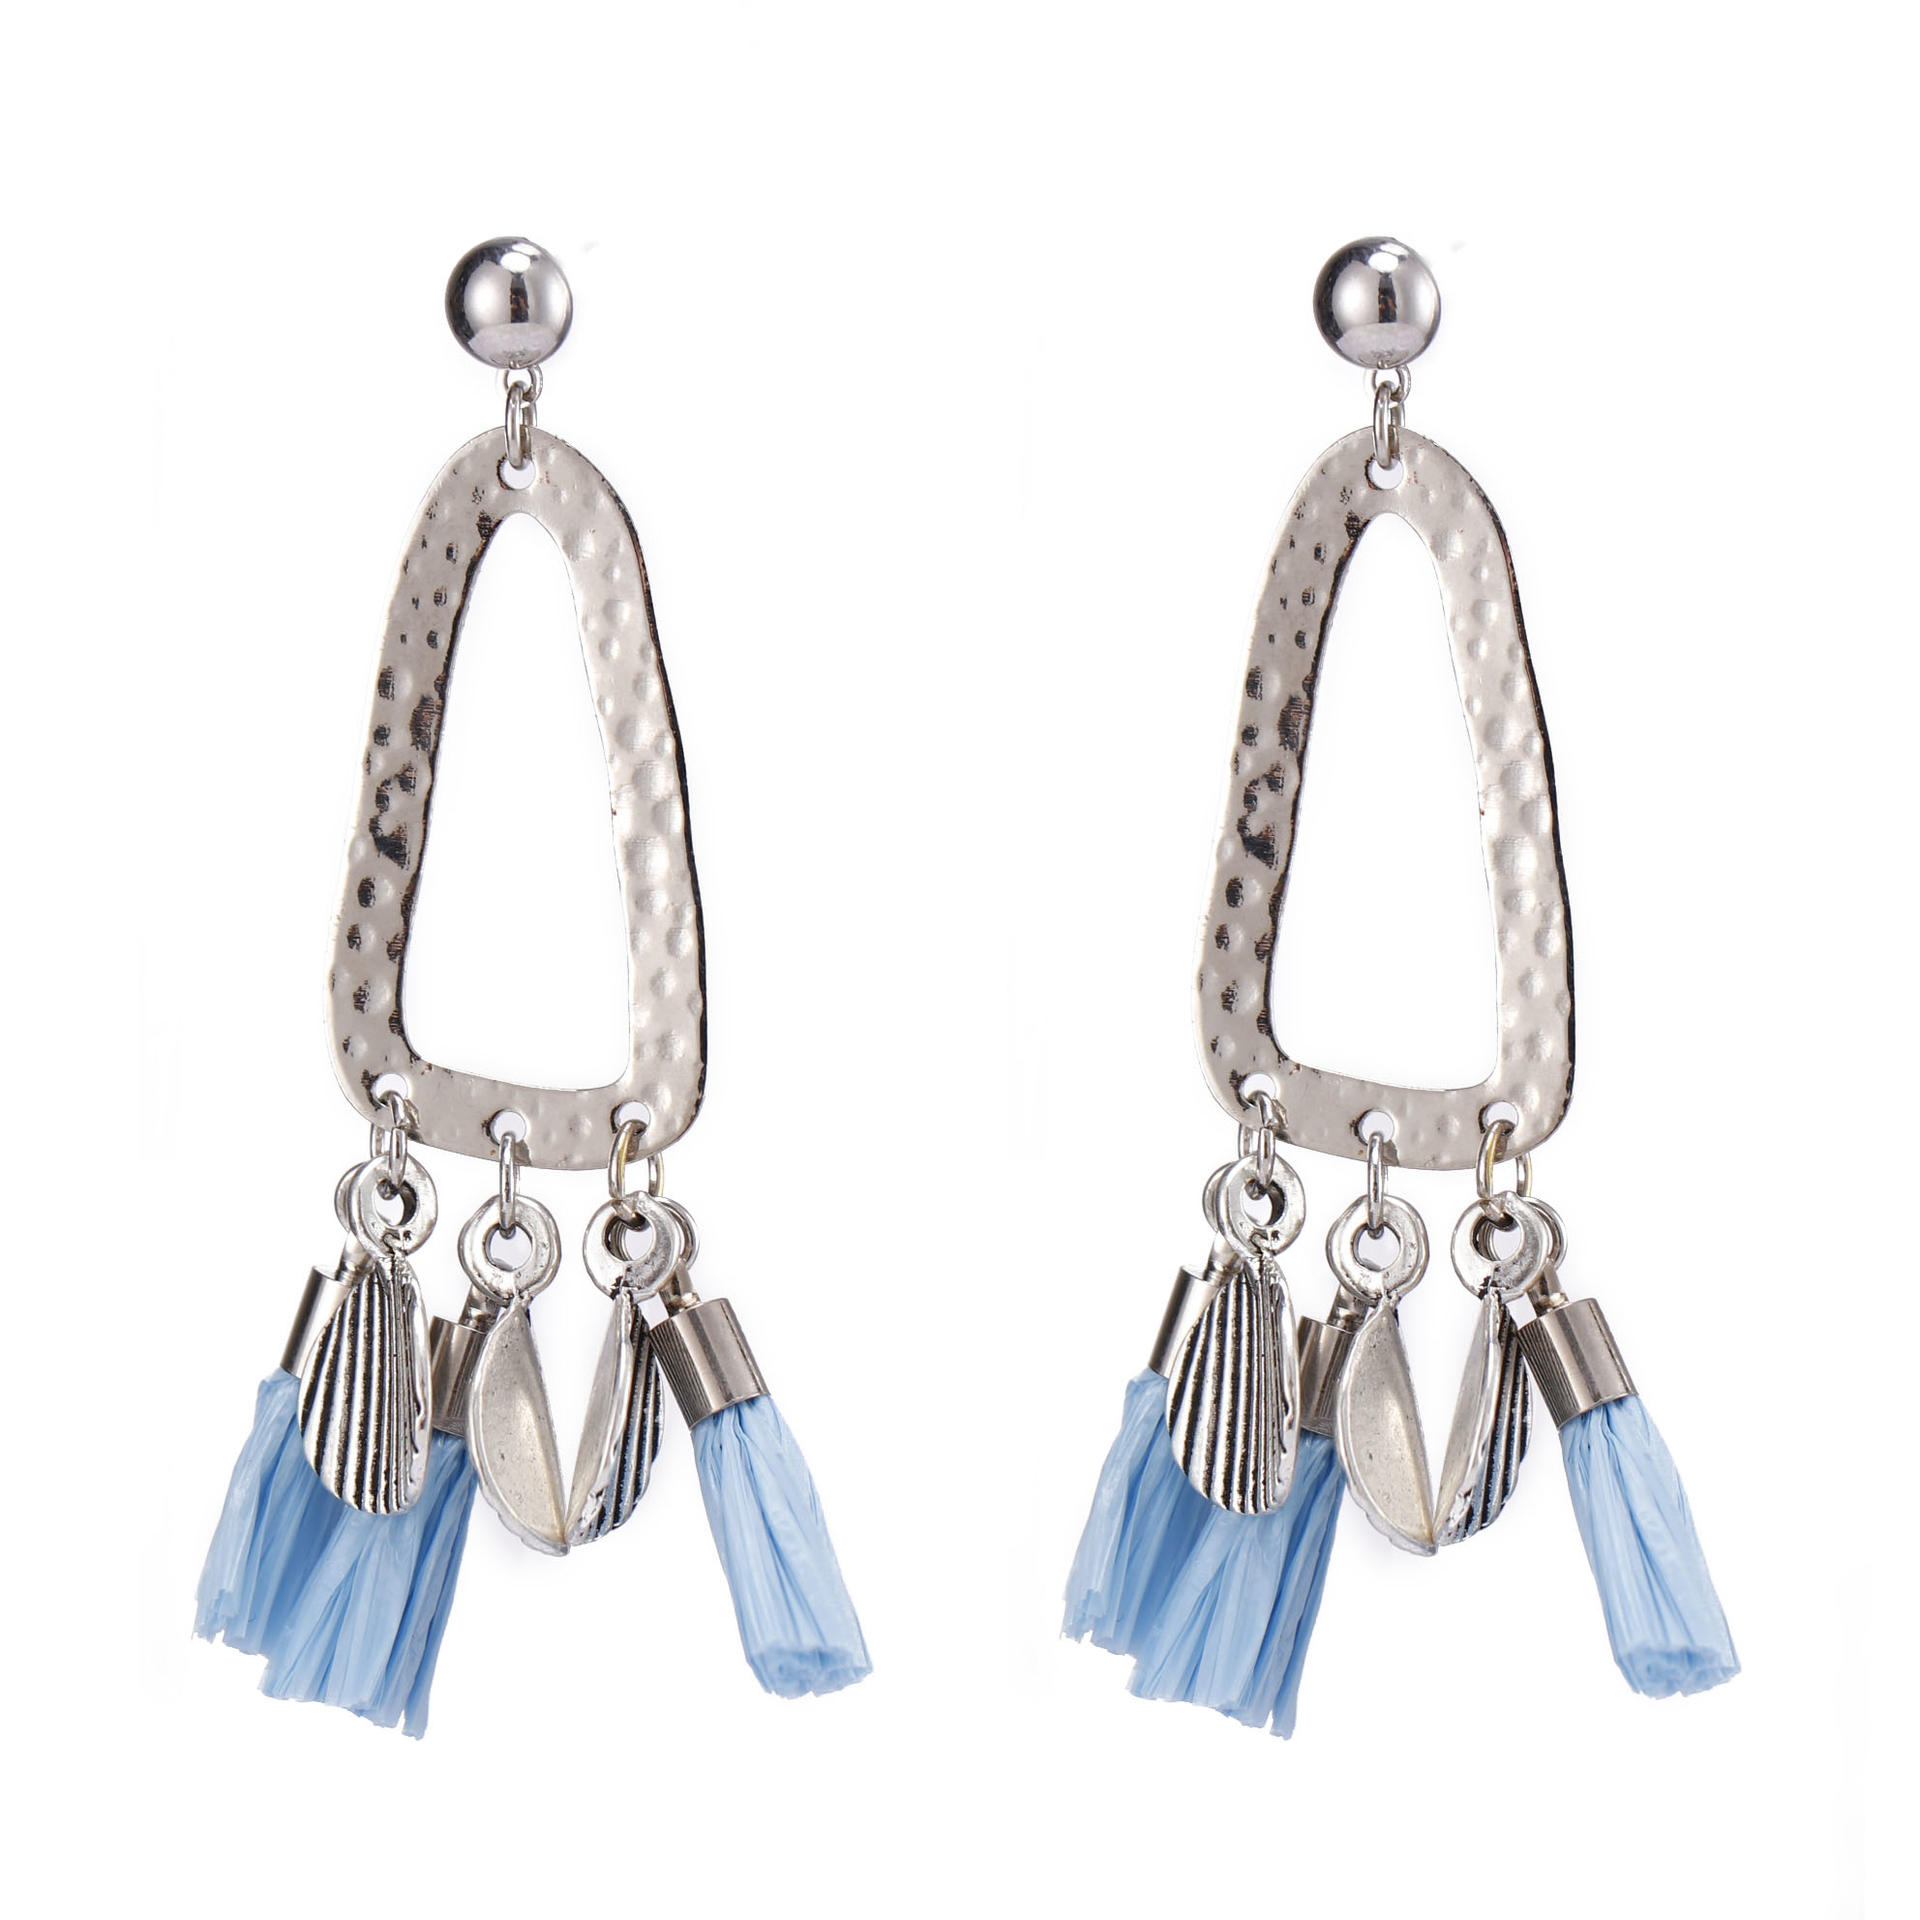 Handmade Plastic Tassel Drop Earrings With Copper Accessories